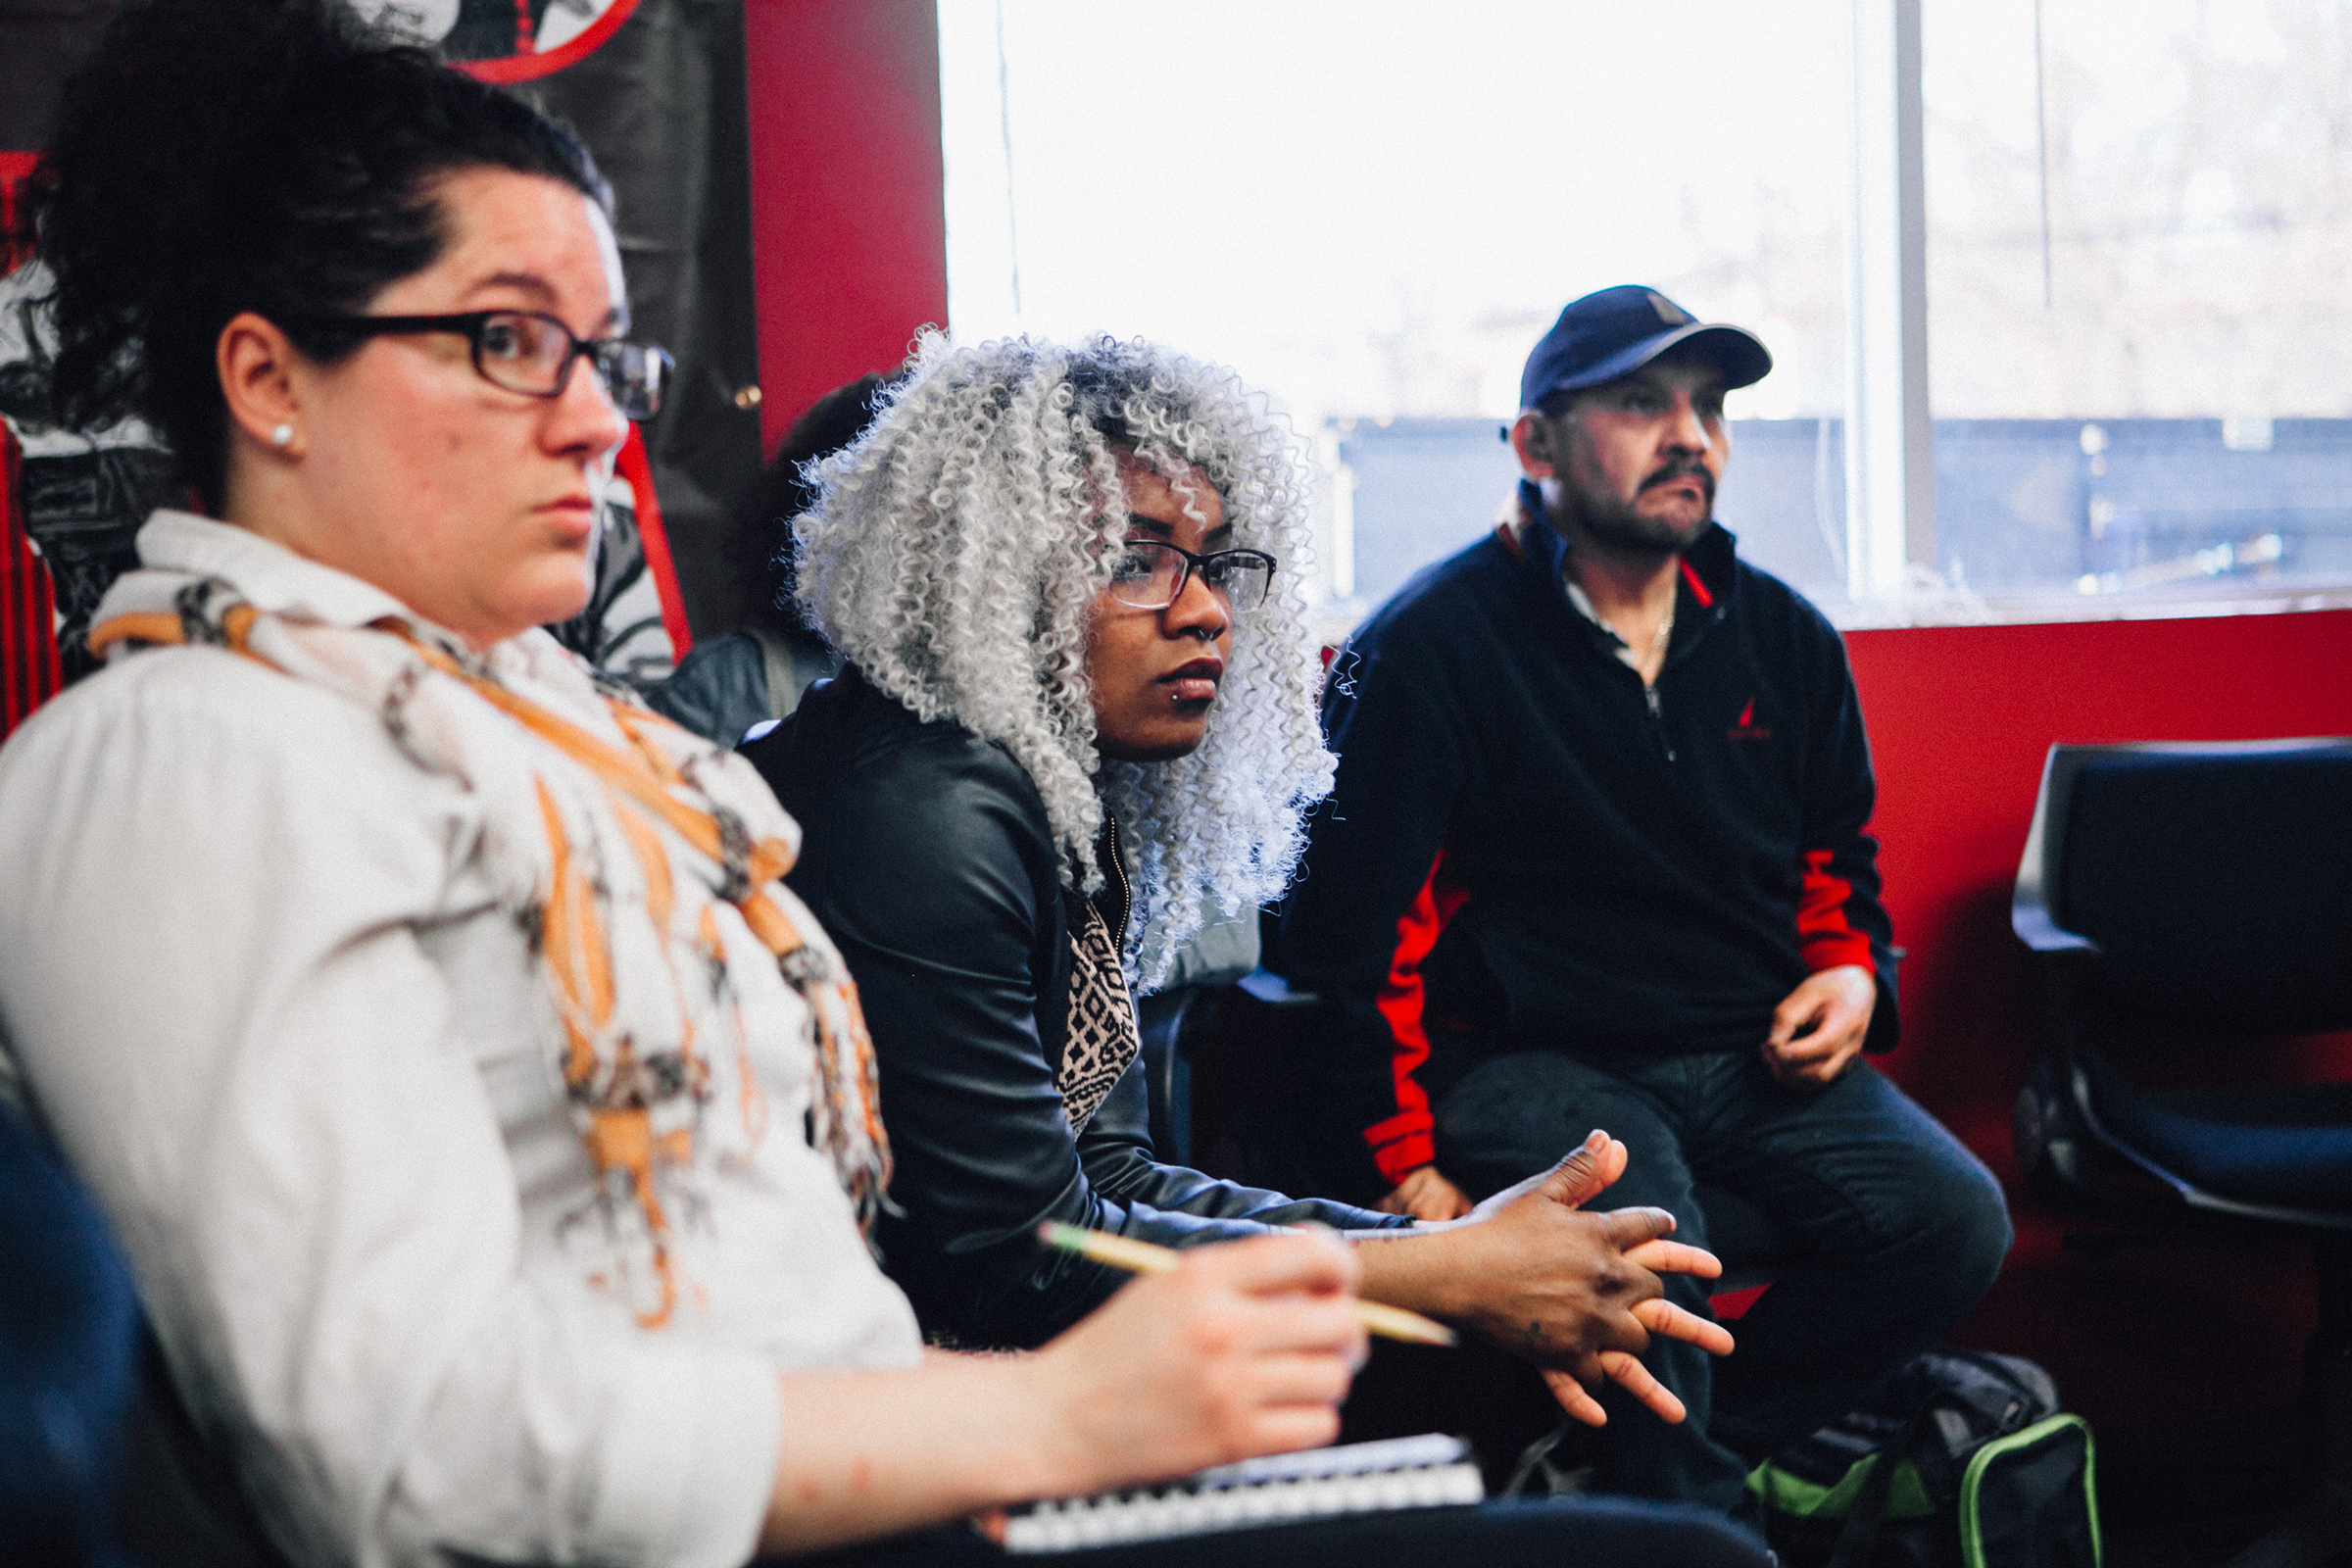 Inquilinxs Unidxs members listen while a fellow renter describes her struggle with substandard housing conditions.